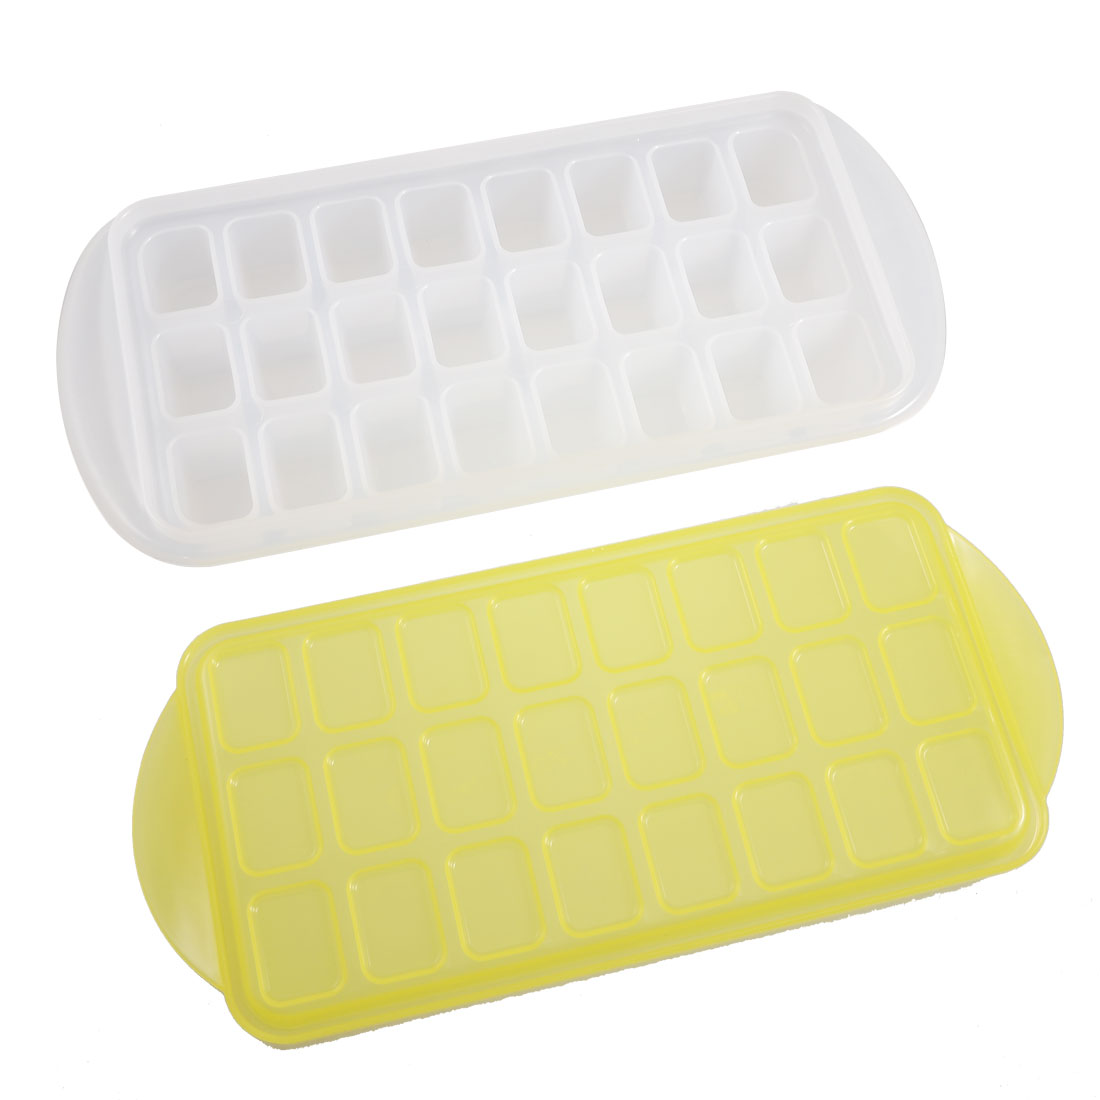 24-slot White Plastic Cake Maker Ice Cube Mold Mould w Yellow Cover